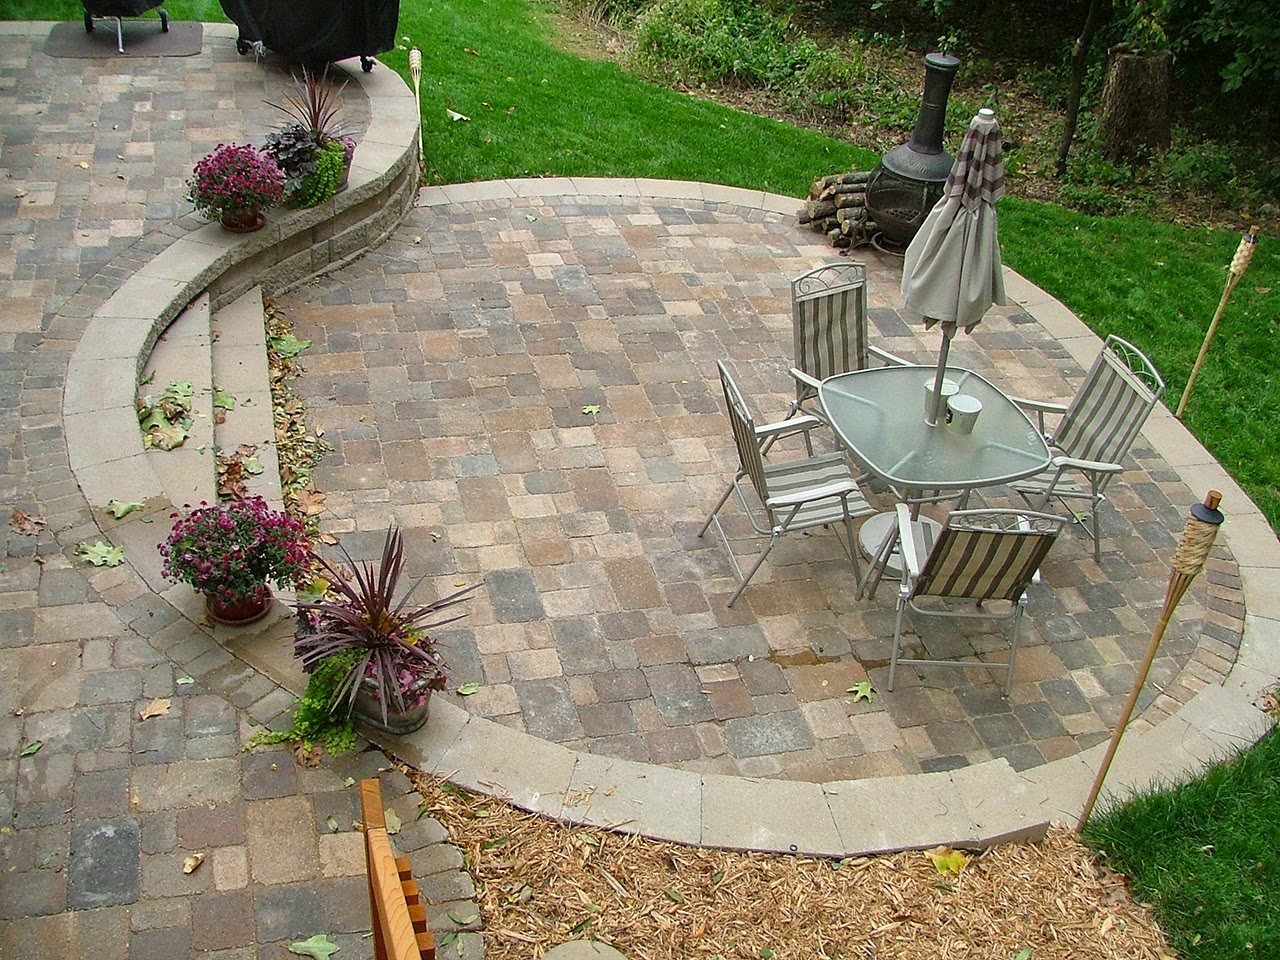 Small Backyard Patio Designs Ideas With Flagstone Patio ... on Backyard Patio Decorating Ideas id=44619